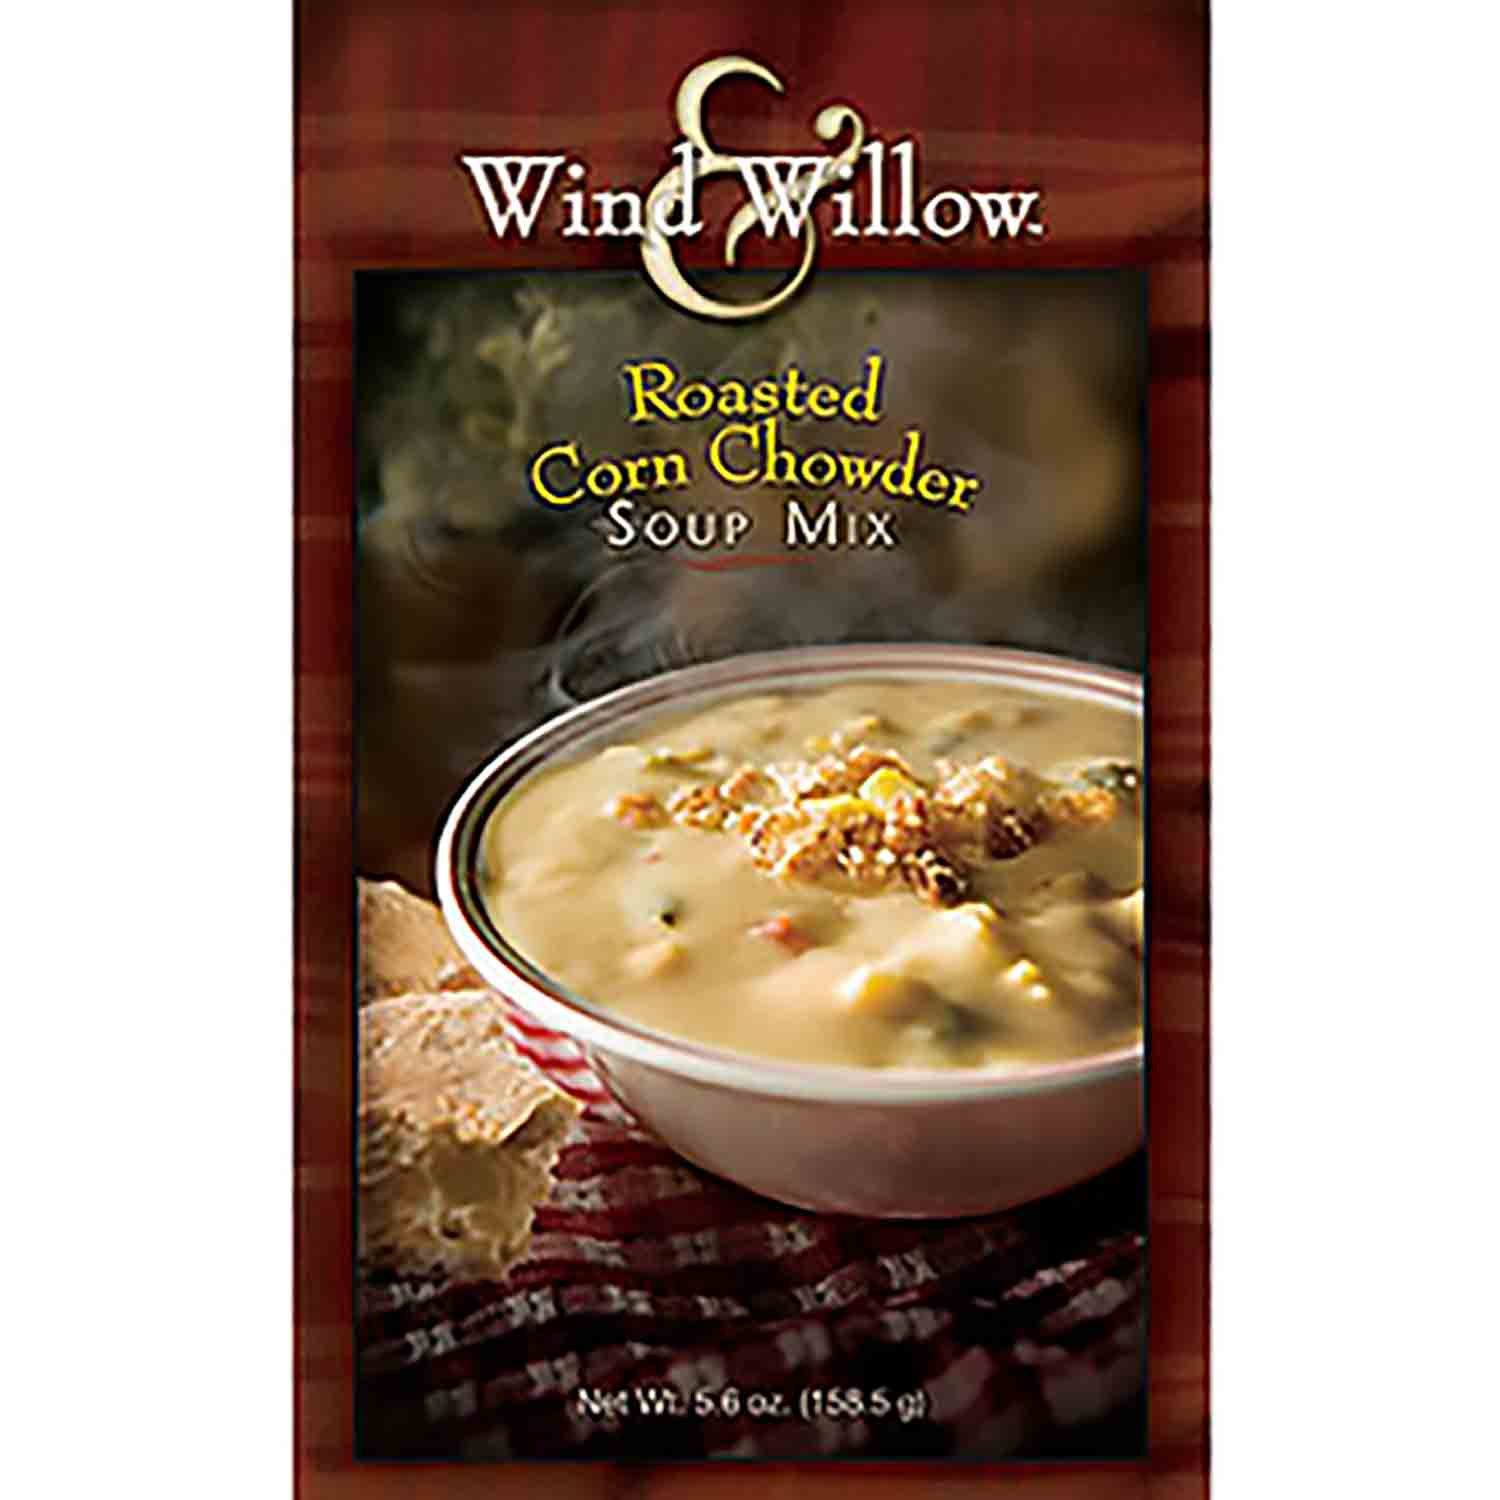 Roasted Corn Chowder Wind & Willow Soup Mix